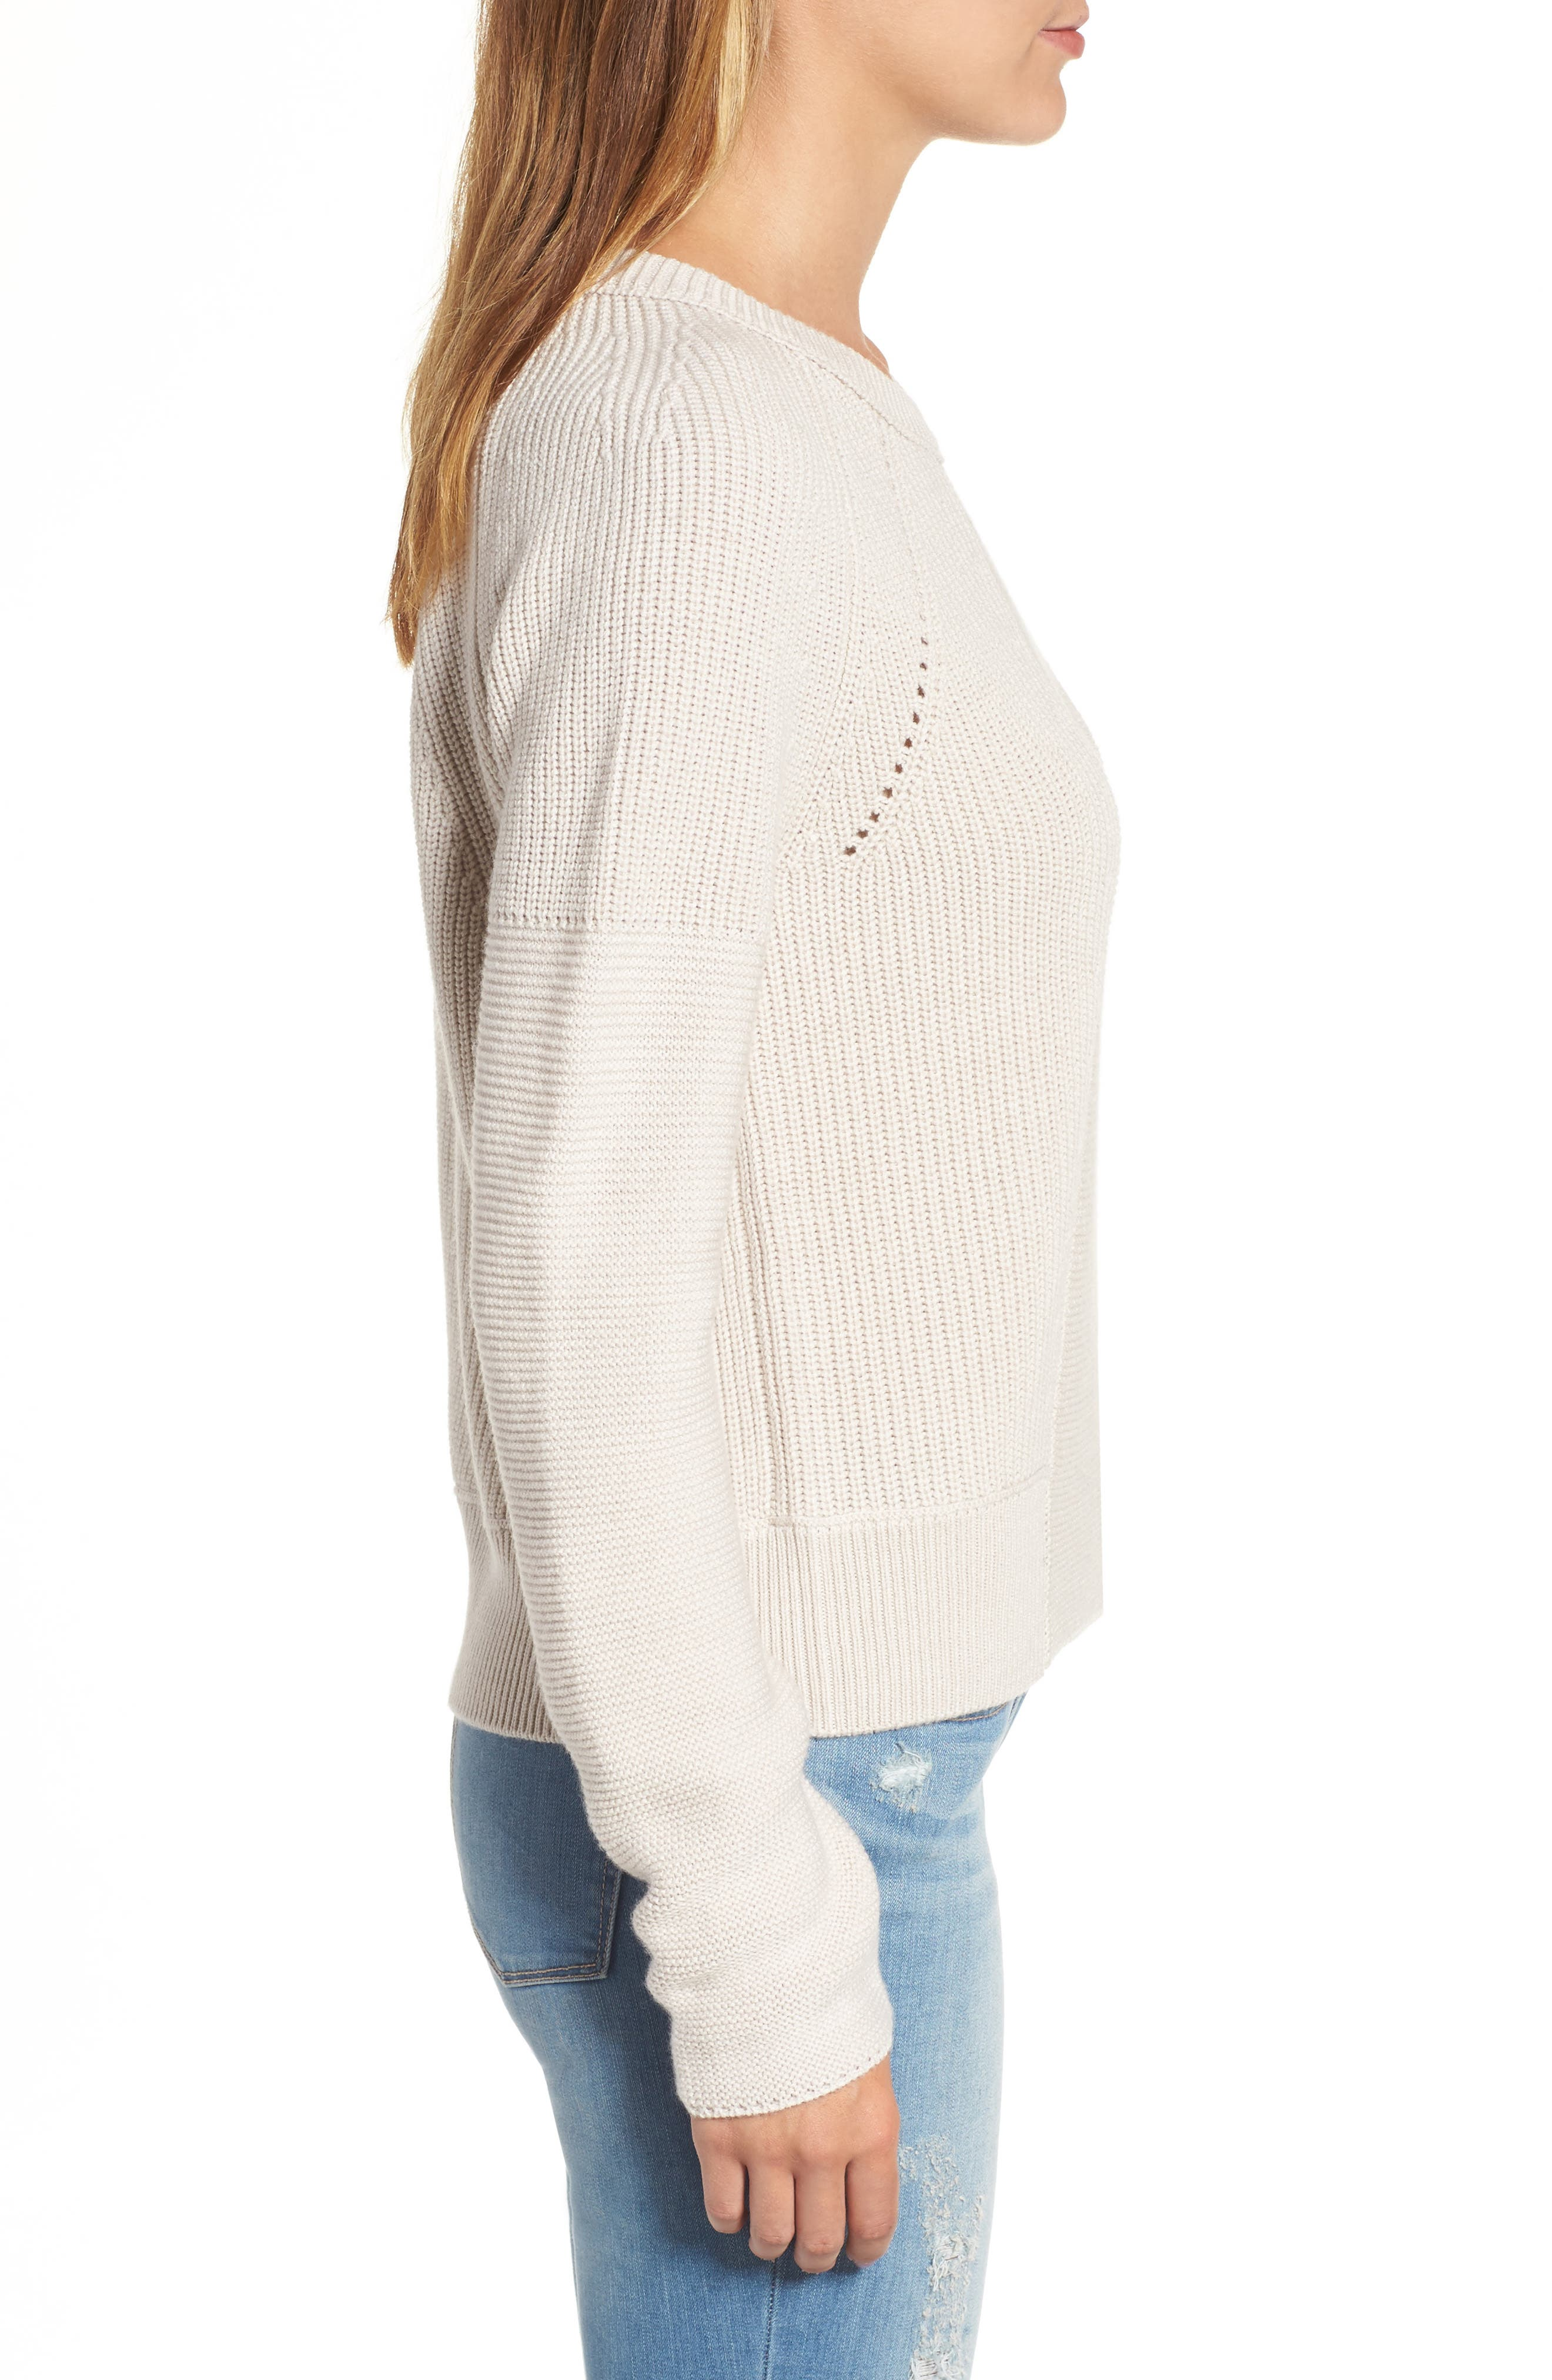 Engineered Stitch Sweater,                             Alternate thumbnail 3, color,                             251